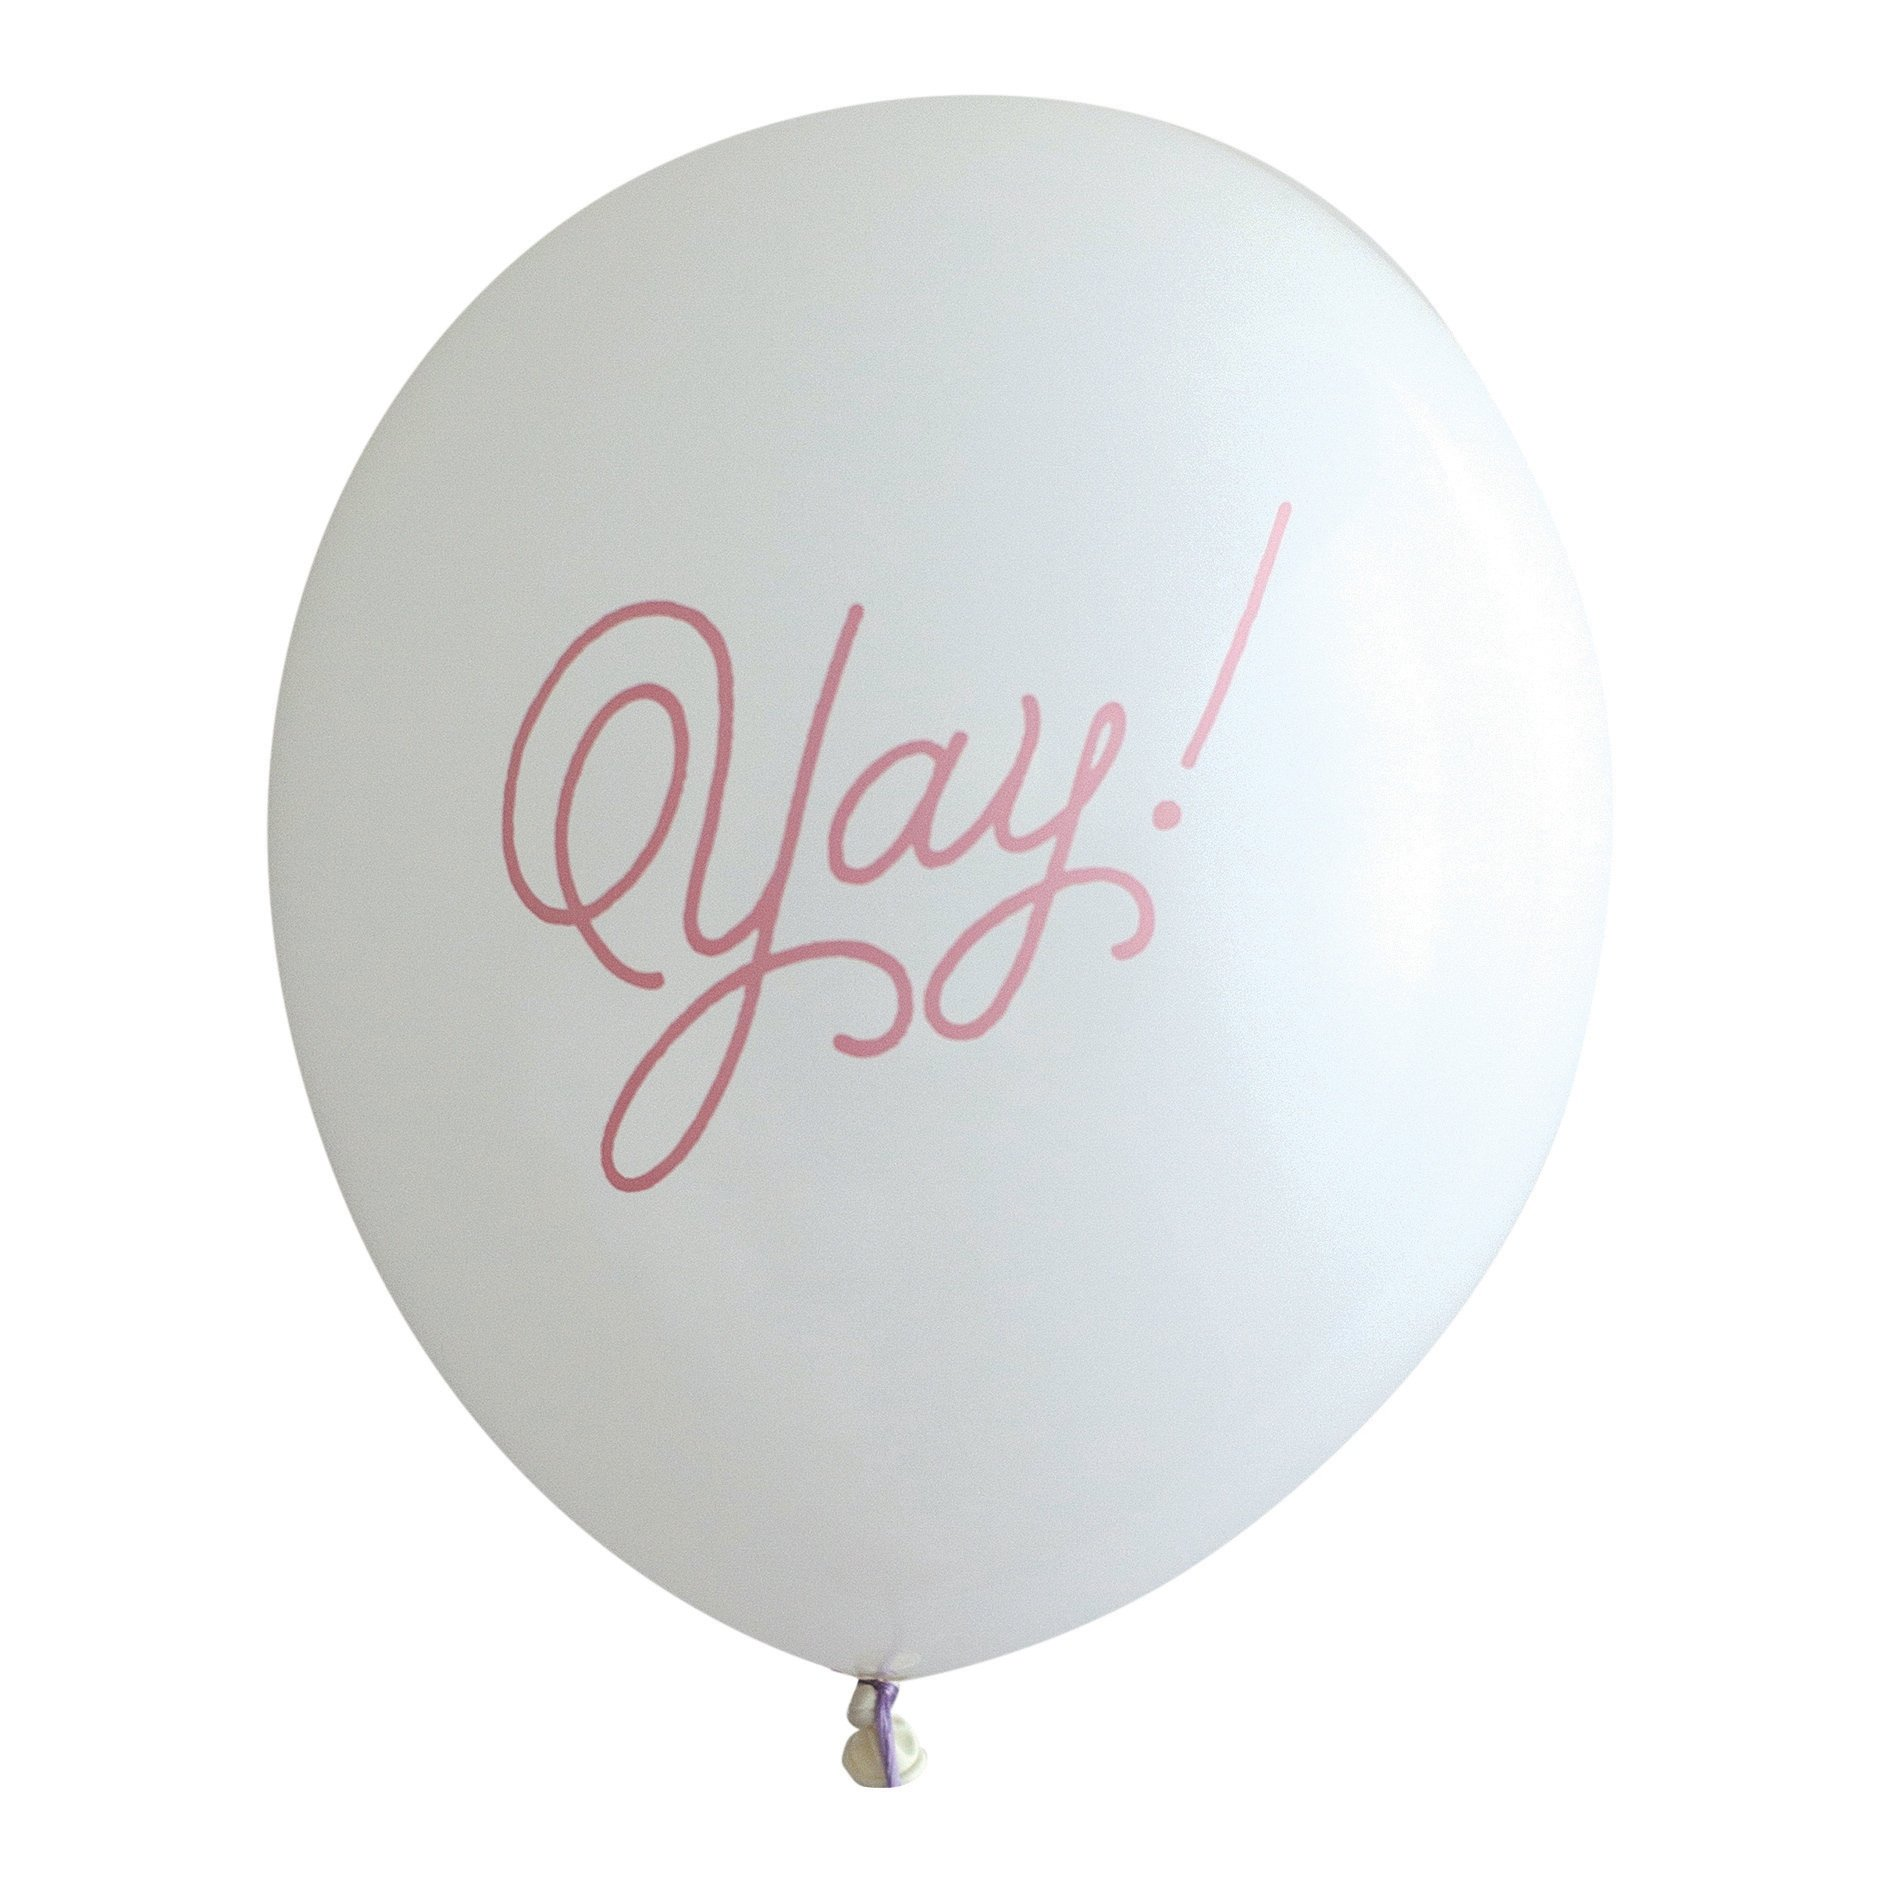 Guava Yay! Party Balloons, made in America by REVEL & Co, Latex Party Balloons